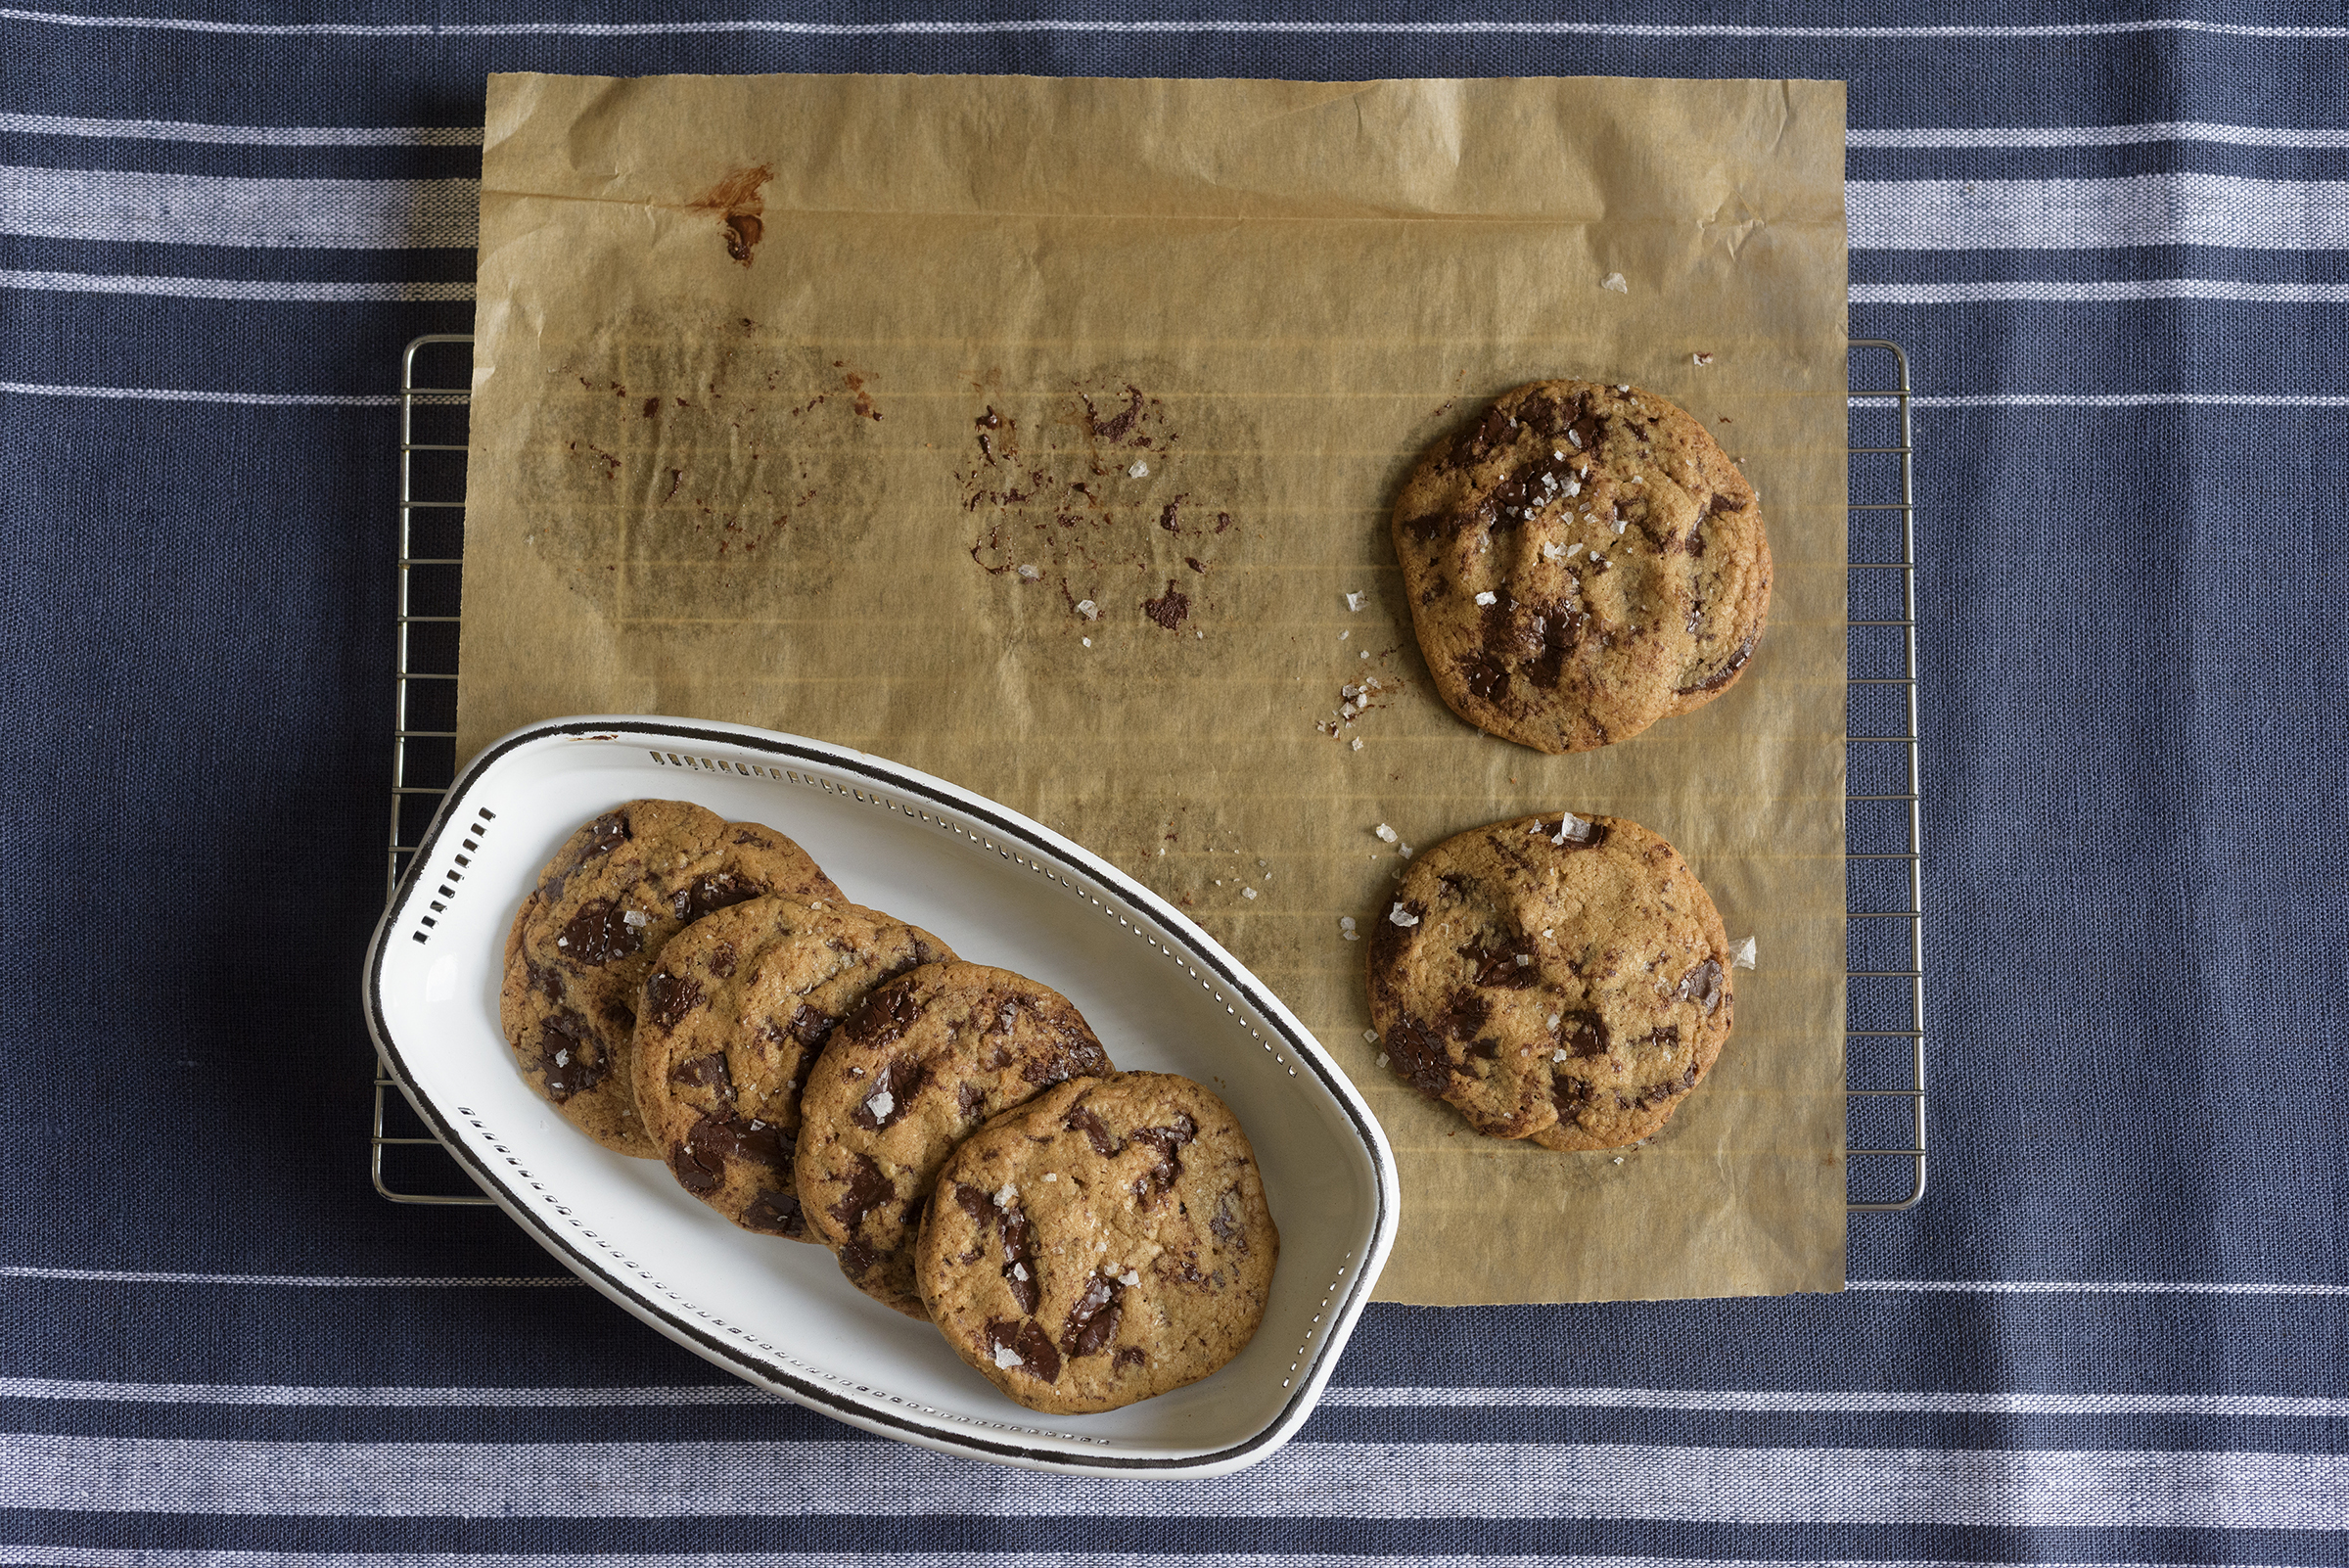 Mast Brothers salted chocolate biscuits